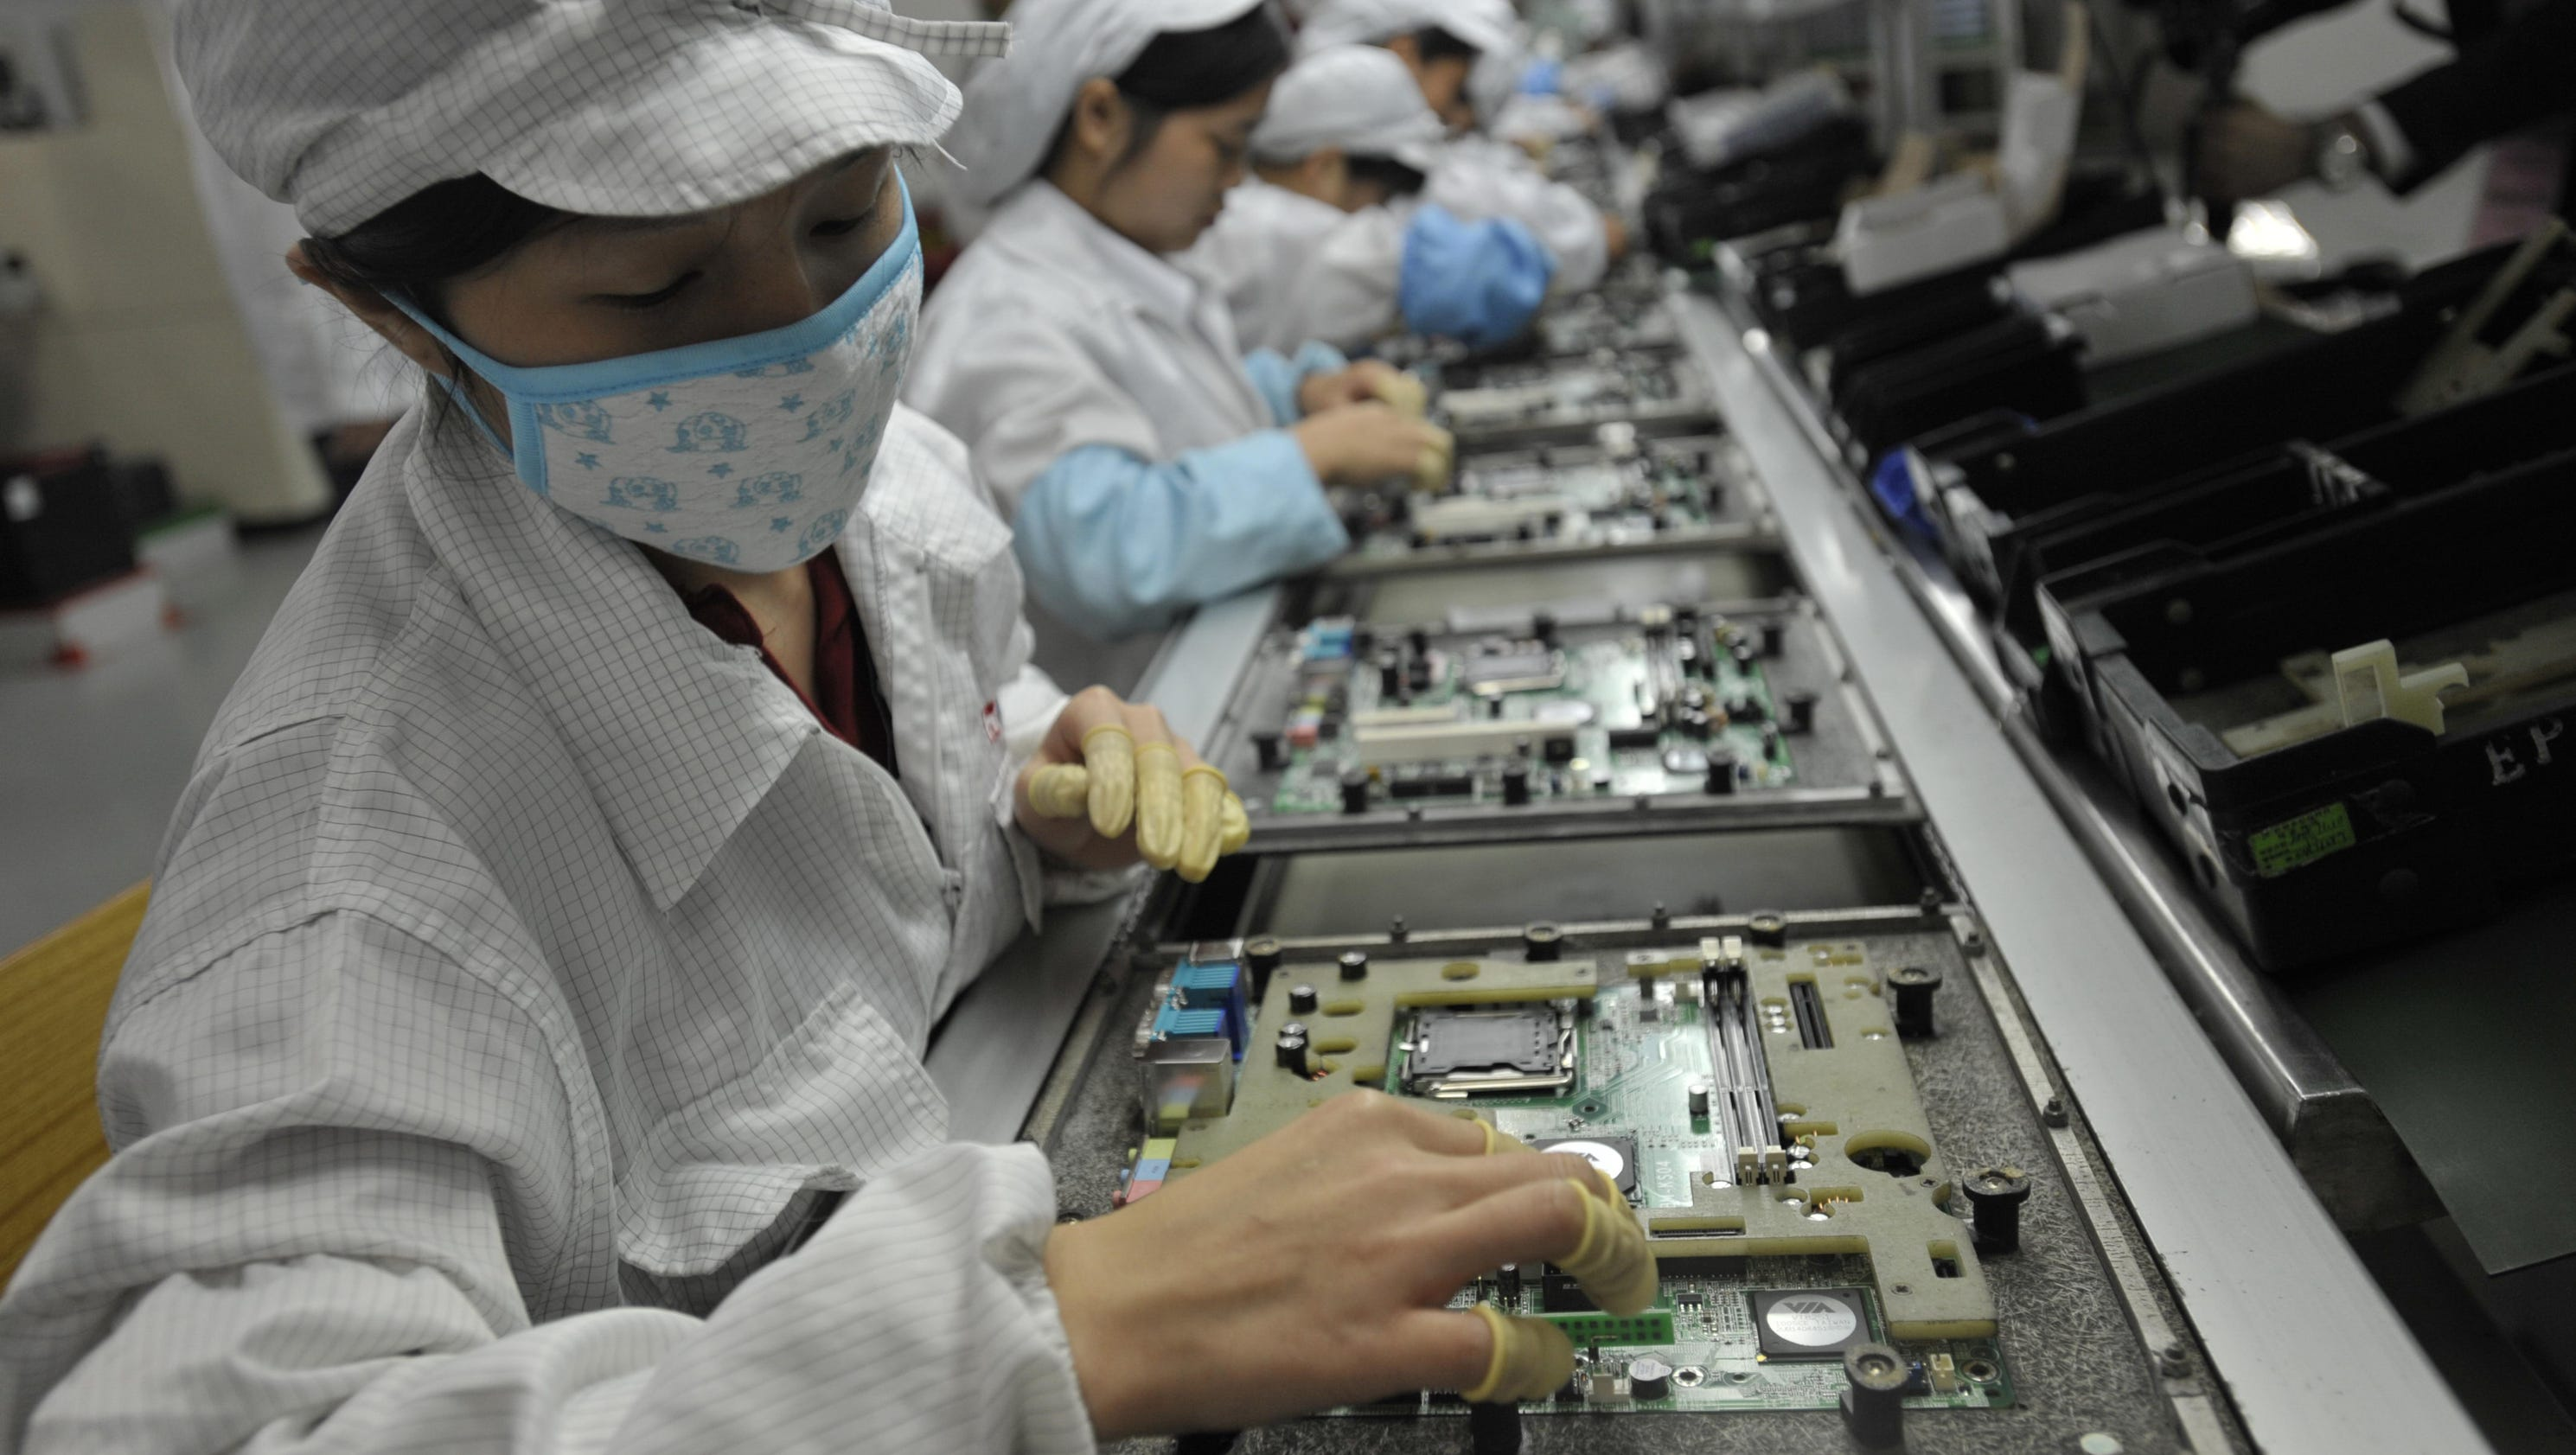 Why not build an iPhone in the USA?